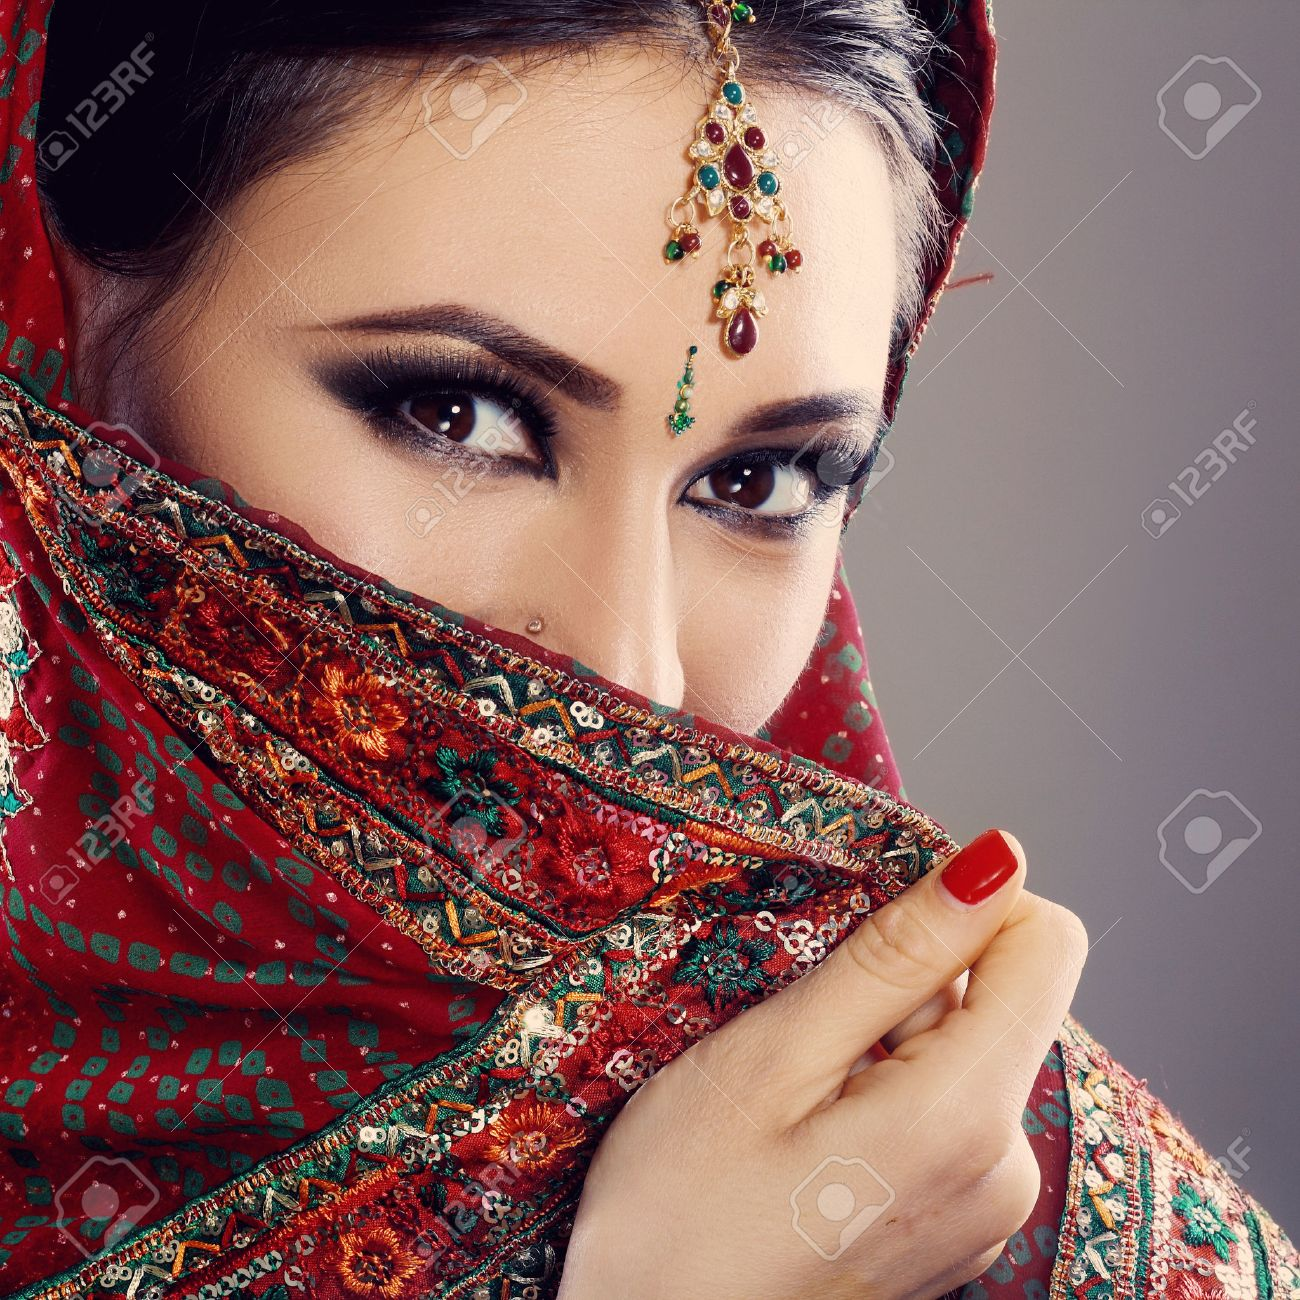 Indian beauty face close up beautiful eyes with perfect make up wedding Stock Photo - 38423392